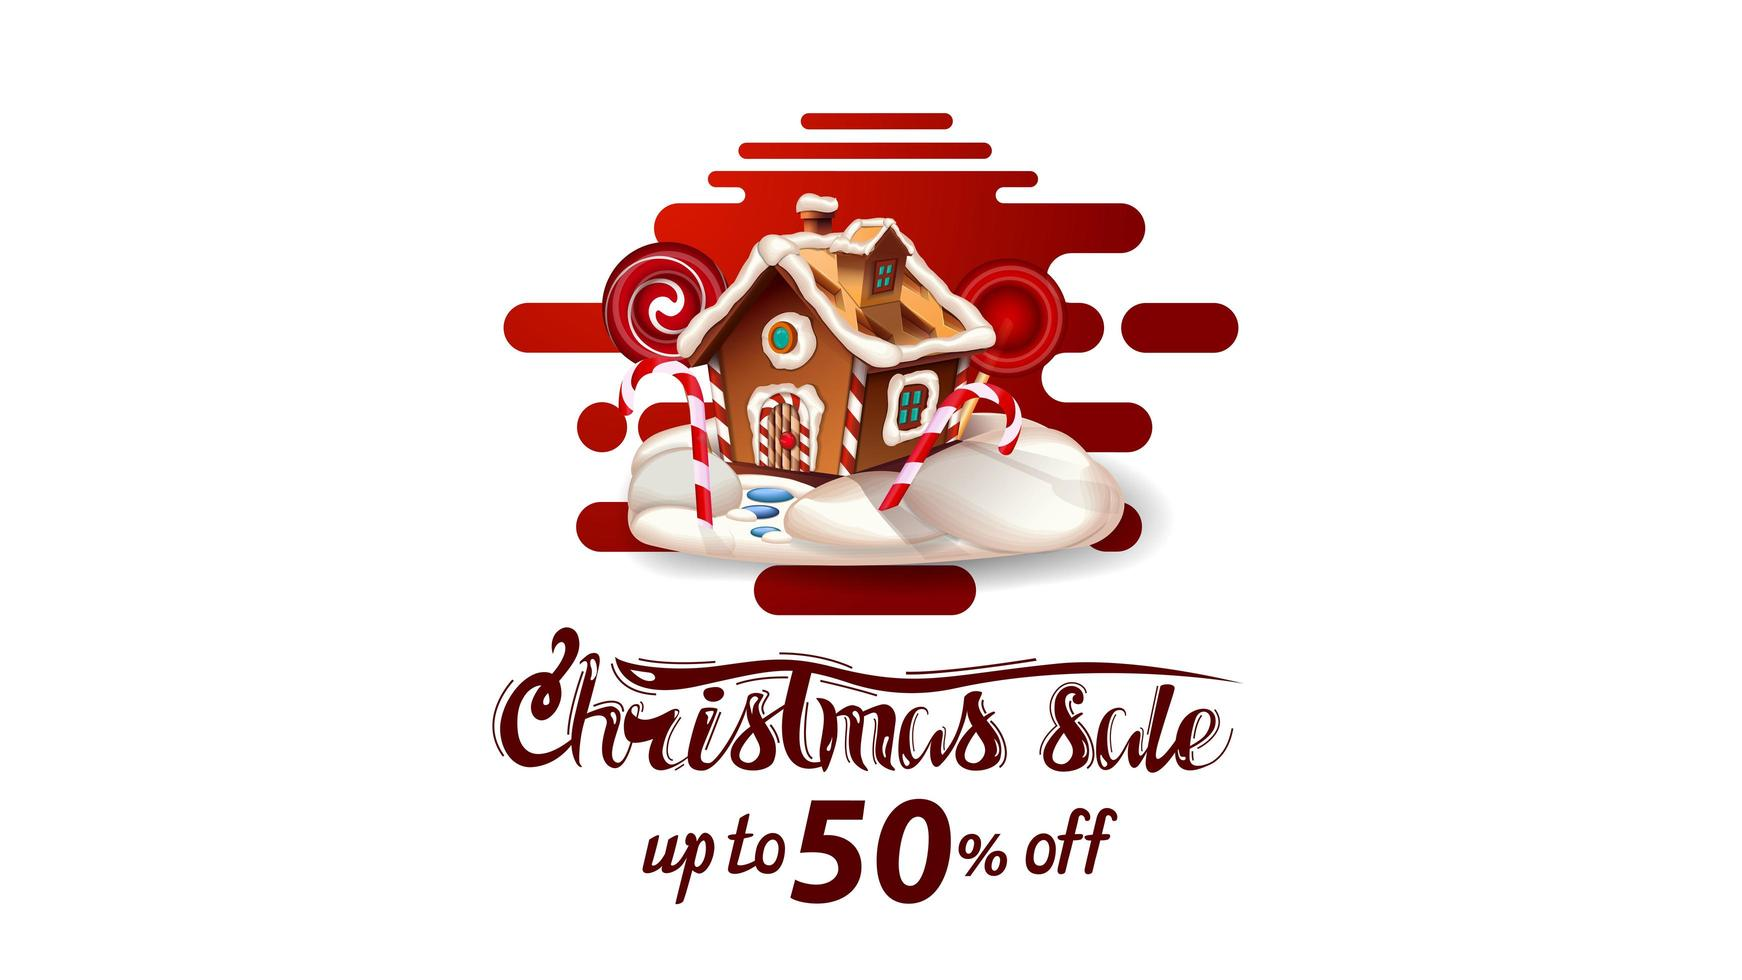 Christmas sale, up to 50 off, beautiful white and red discount banner in lava lamp style with smooth lines and Christmas gingerbread house vector